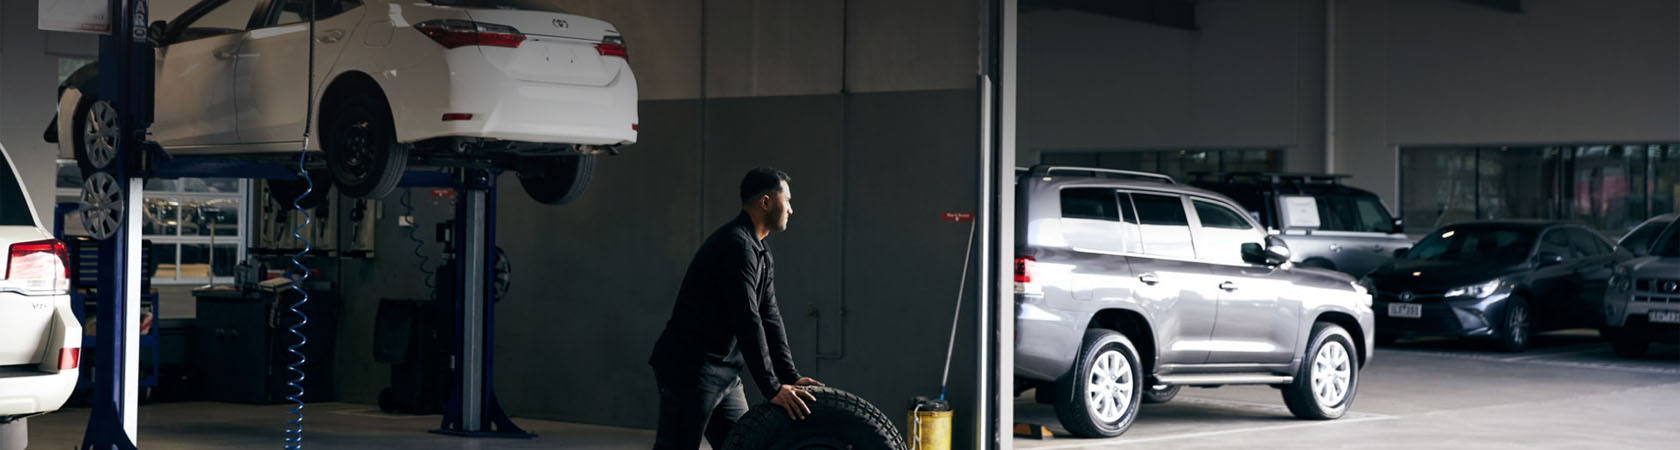 New England Toyota - Armidale Vehicle Service